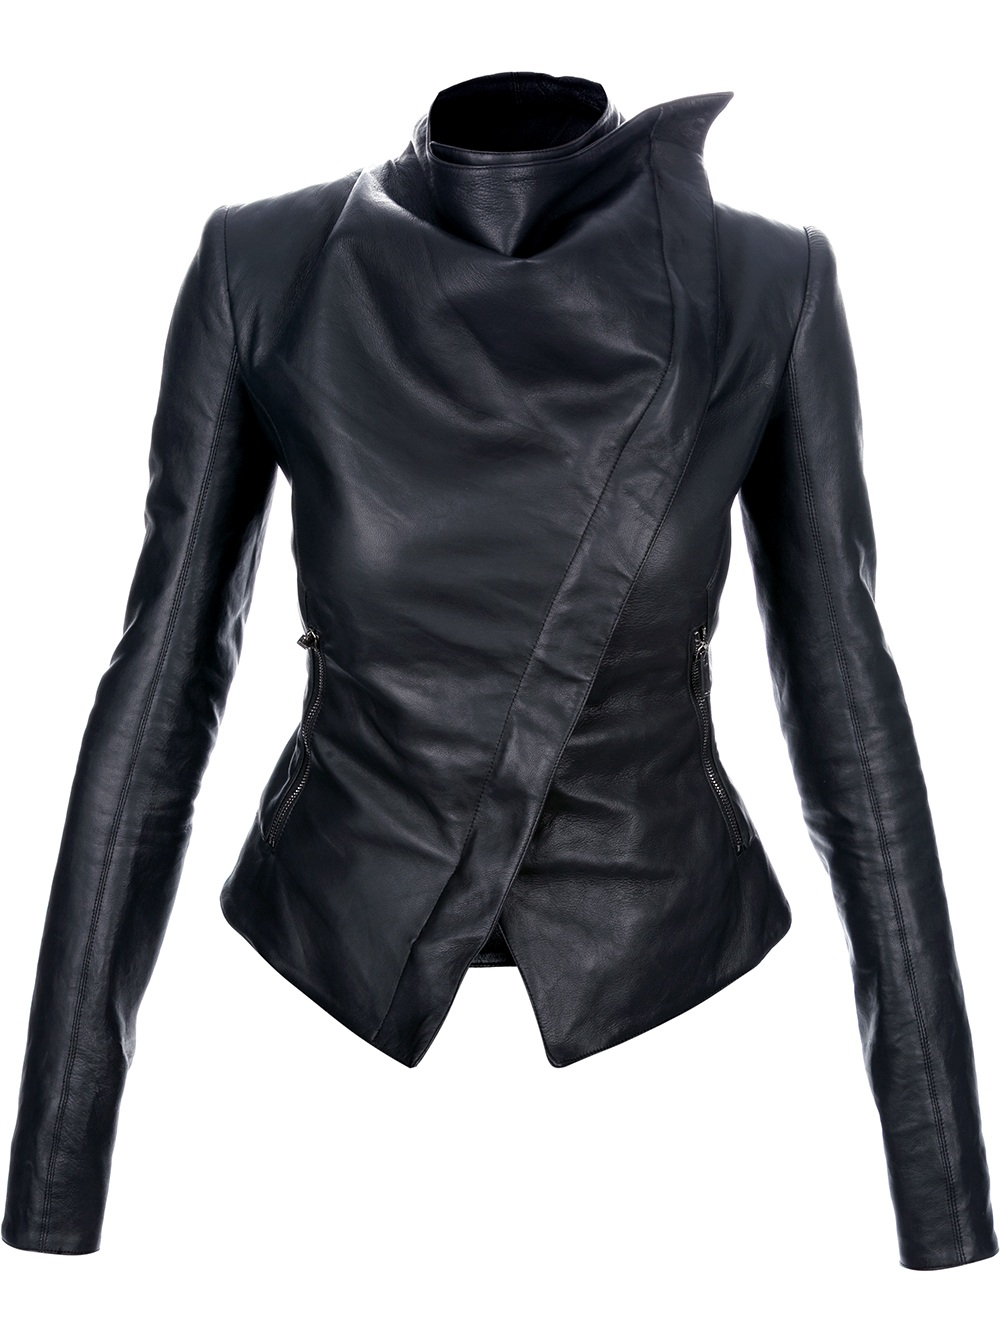 Gareth pugh Asymmetric Leather Jacket in Black